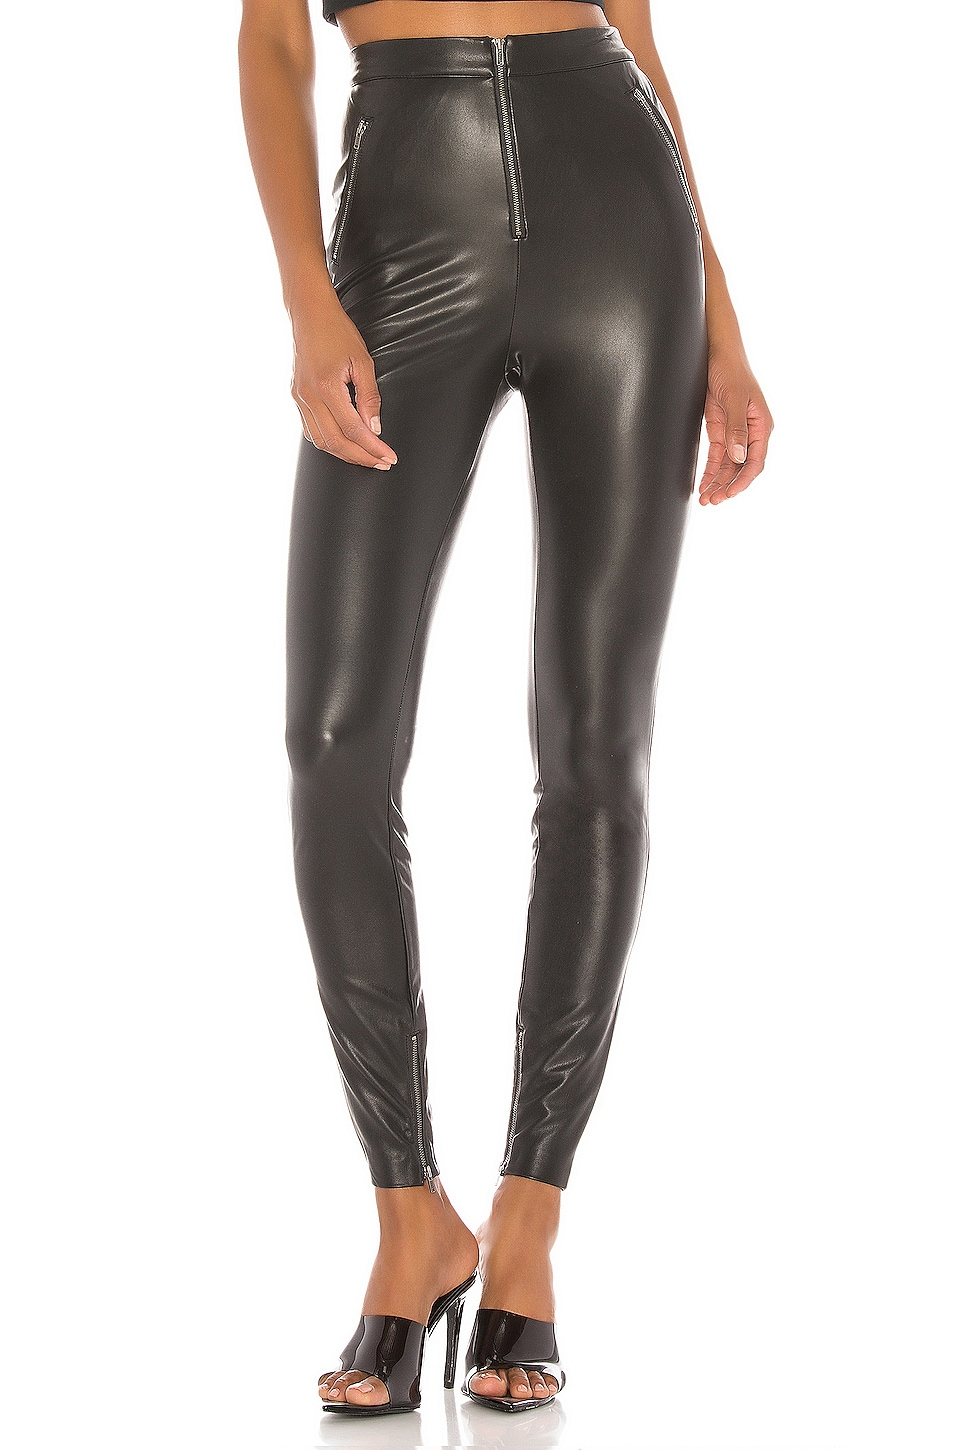 h:ours Starlet Pant in Black